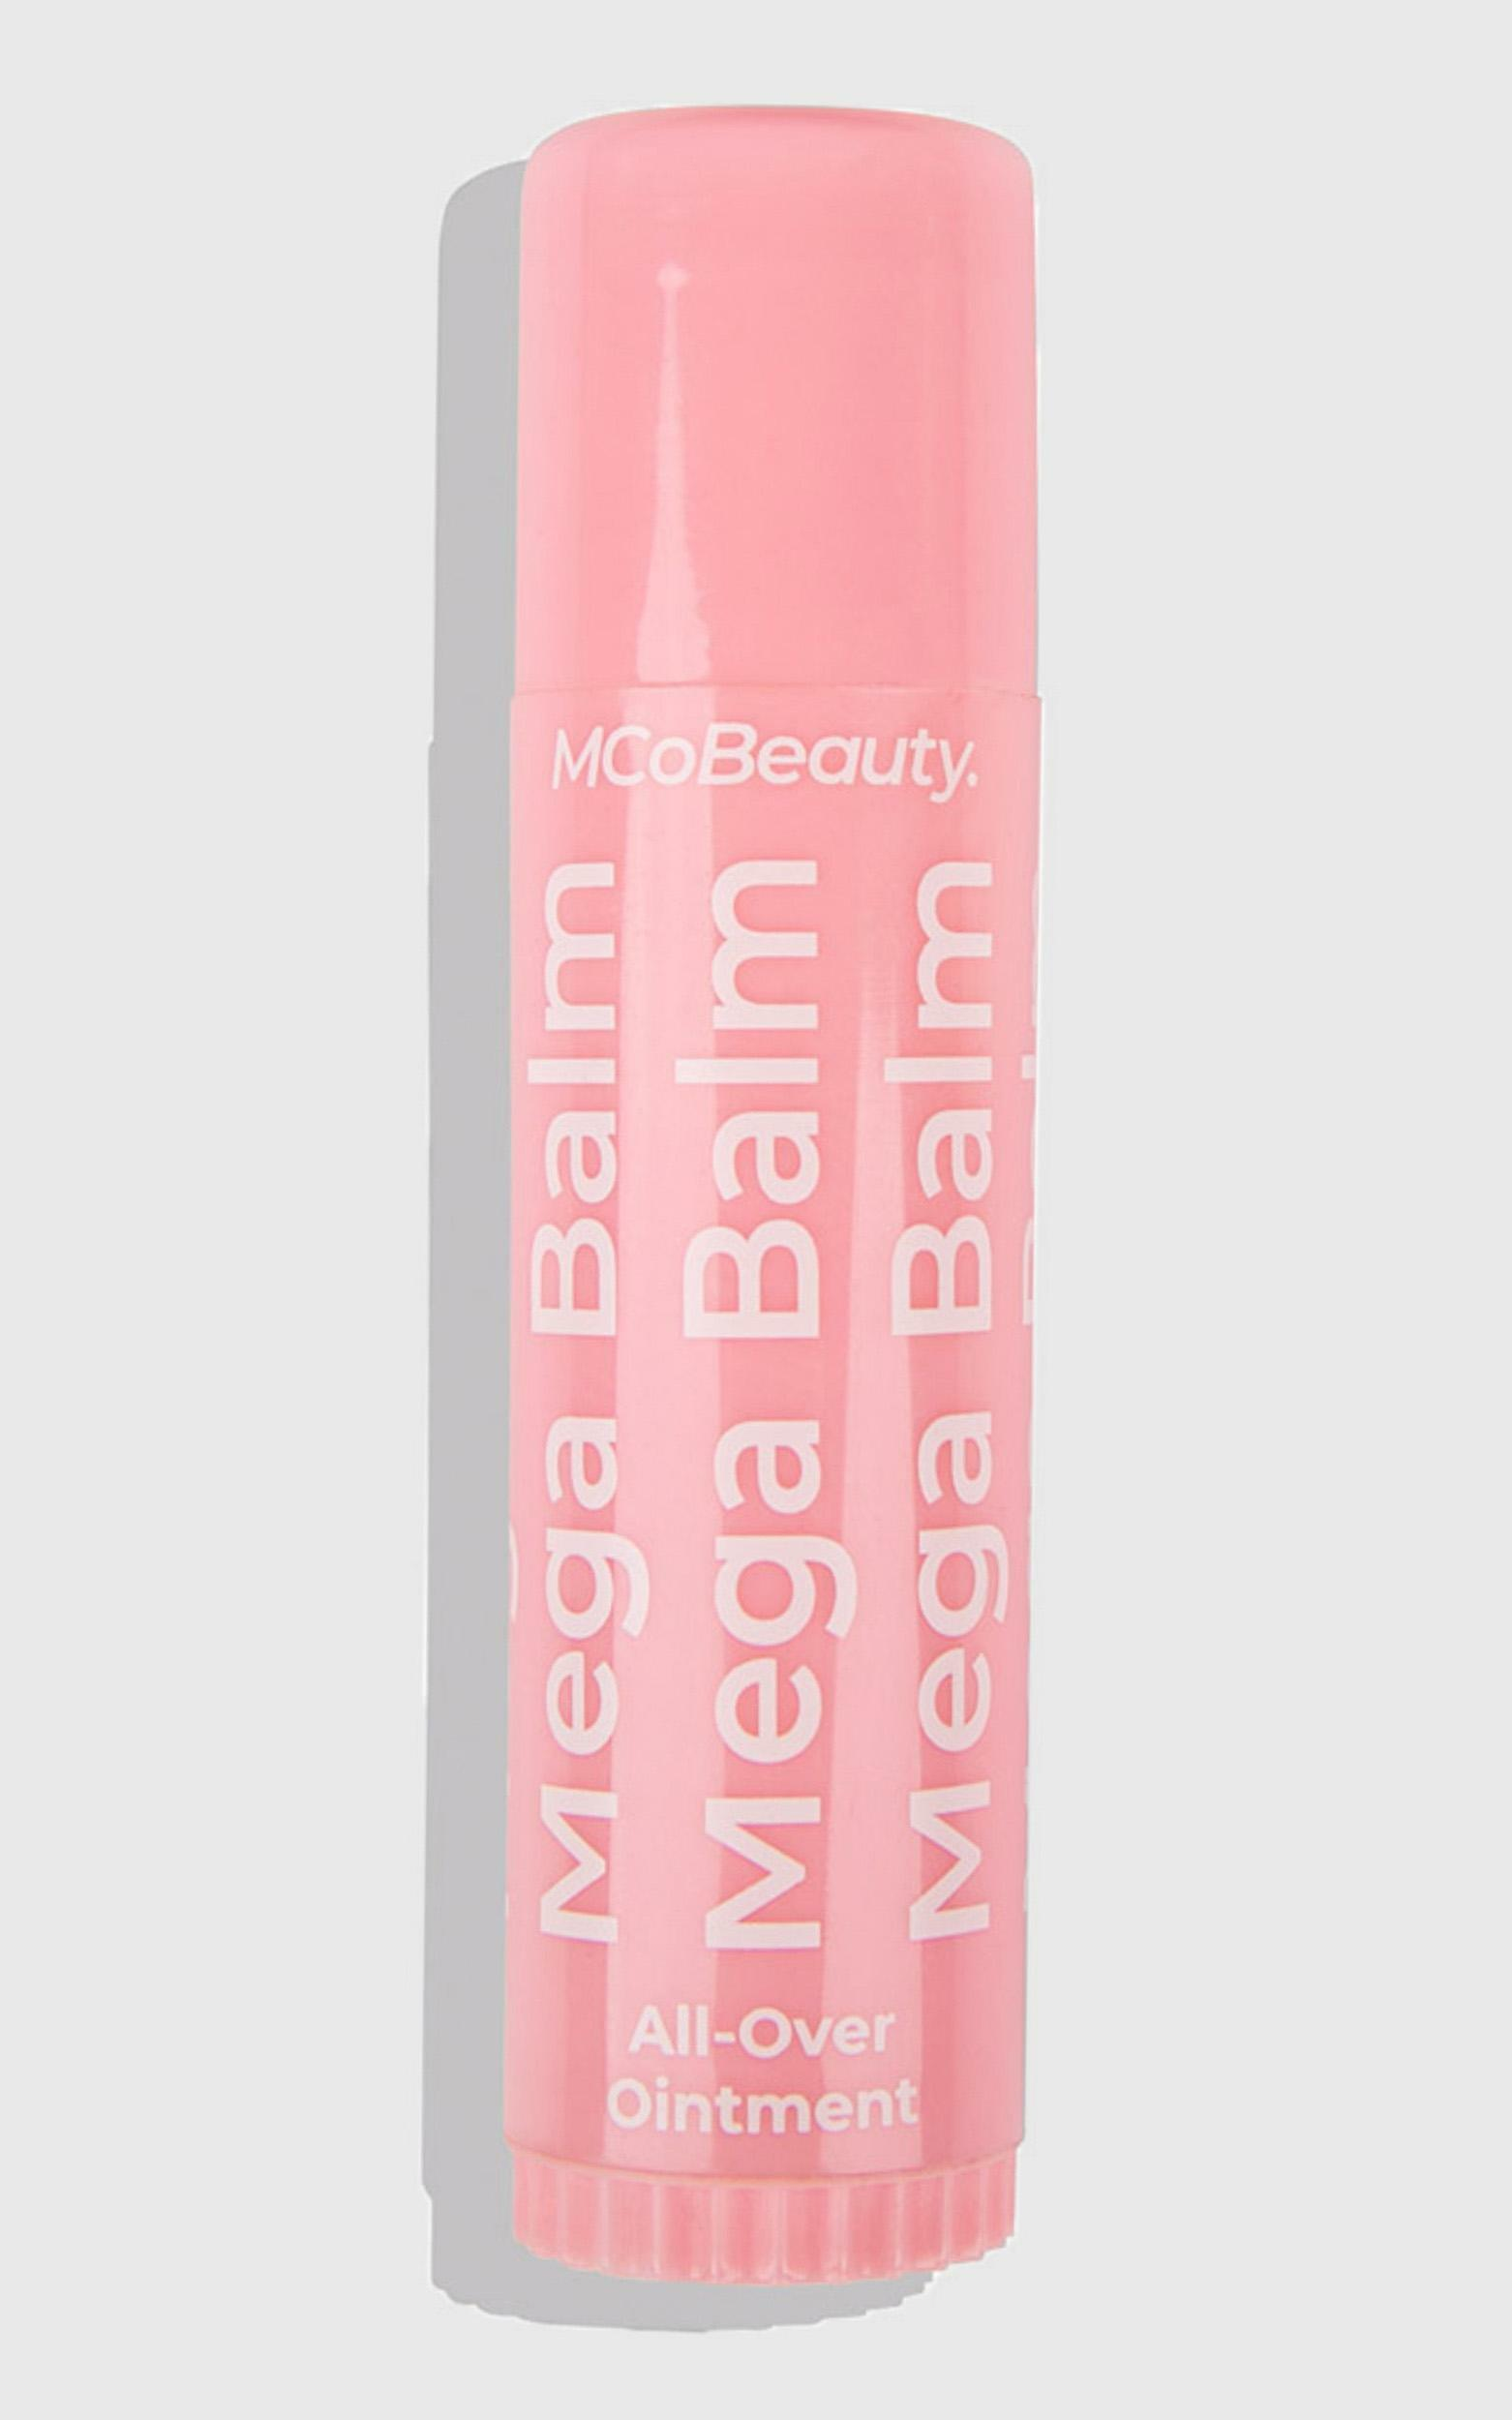 MCoBeauty - Mega Balm All-Over Ointment in Clear, CLR1, hi-res image number null